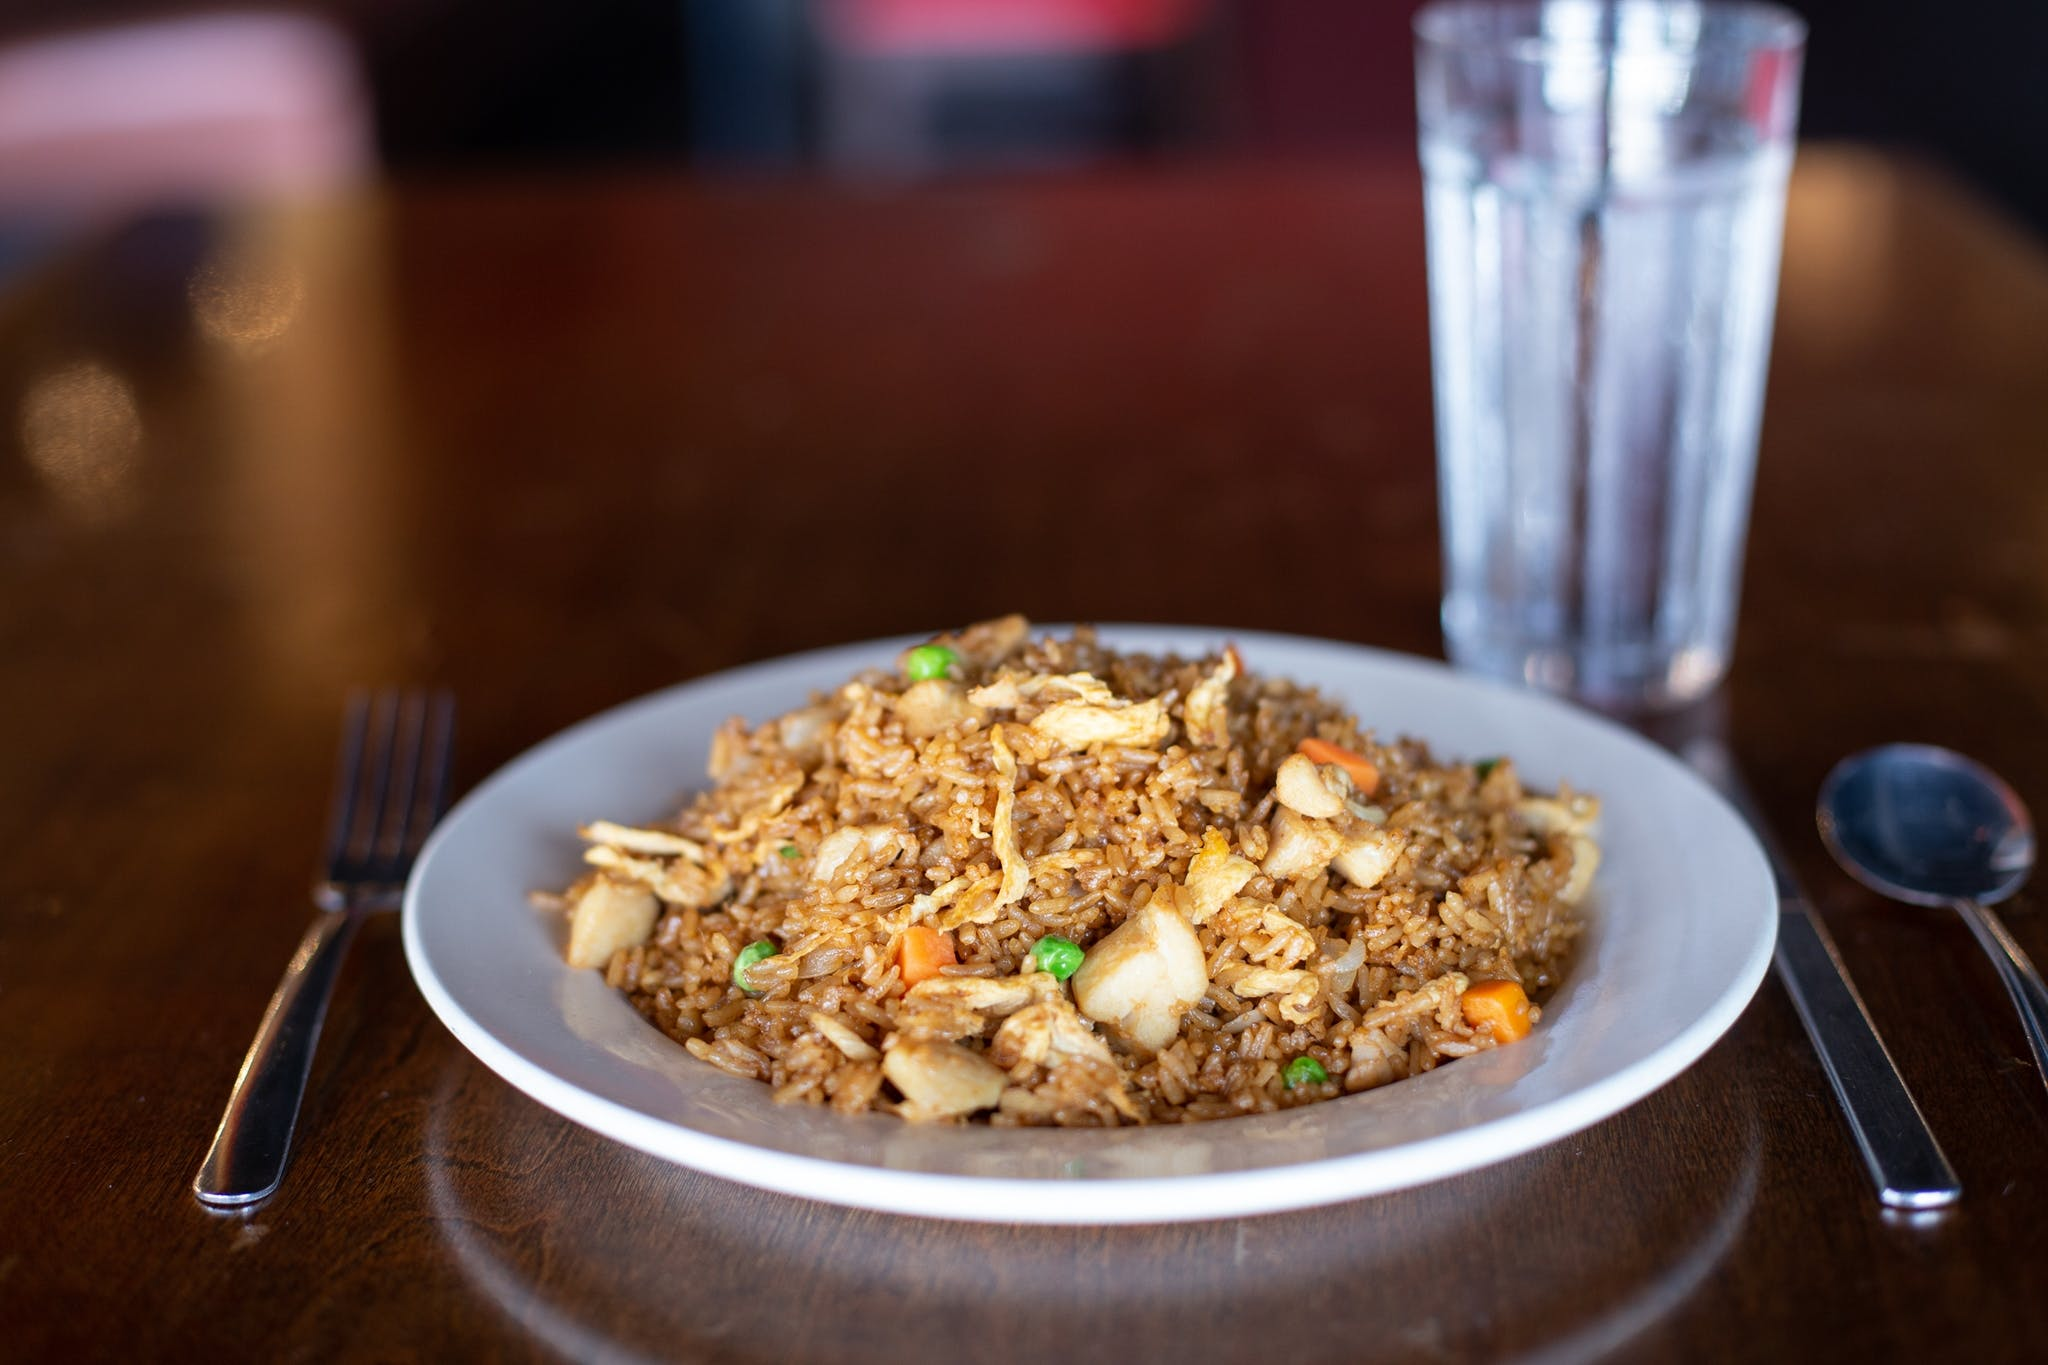 882. Chicken Fried Rice Large from Jade Garden in Lawrence, KS